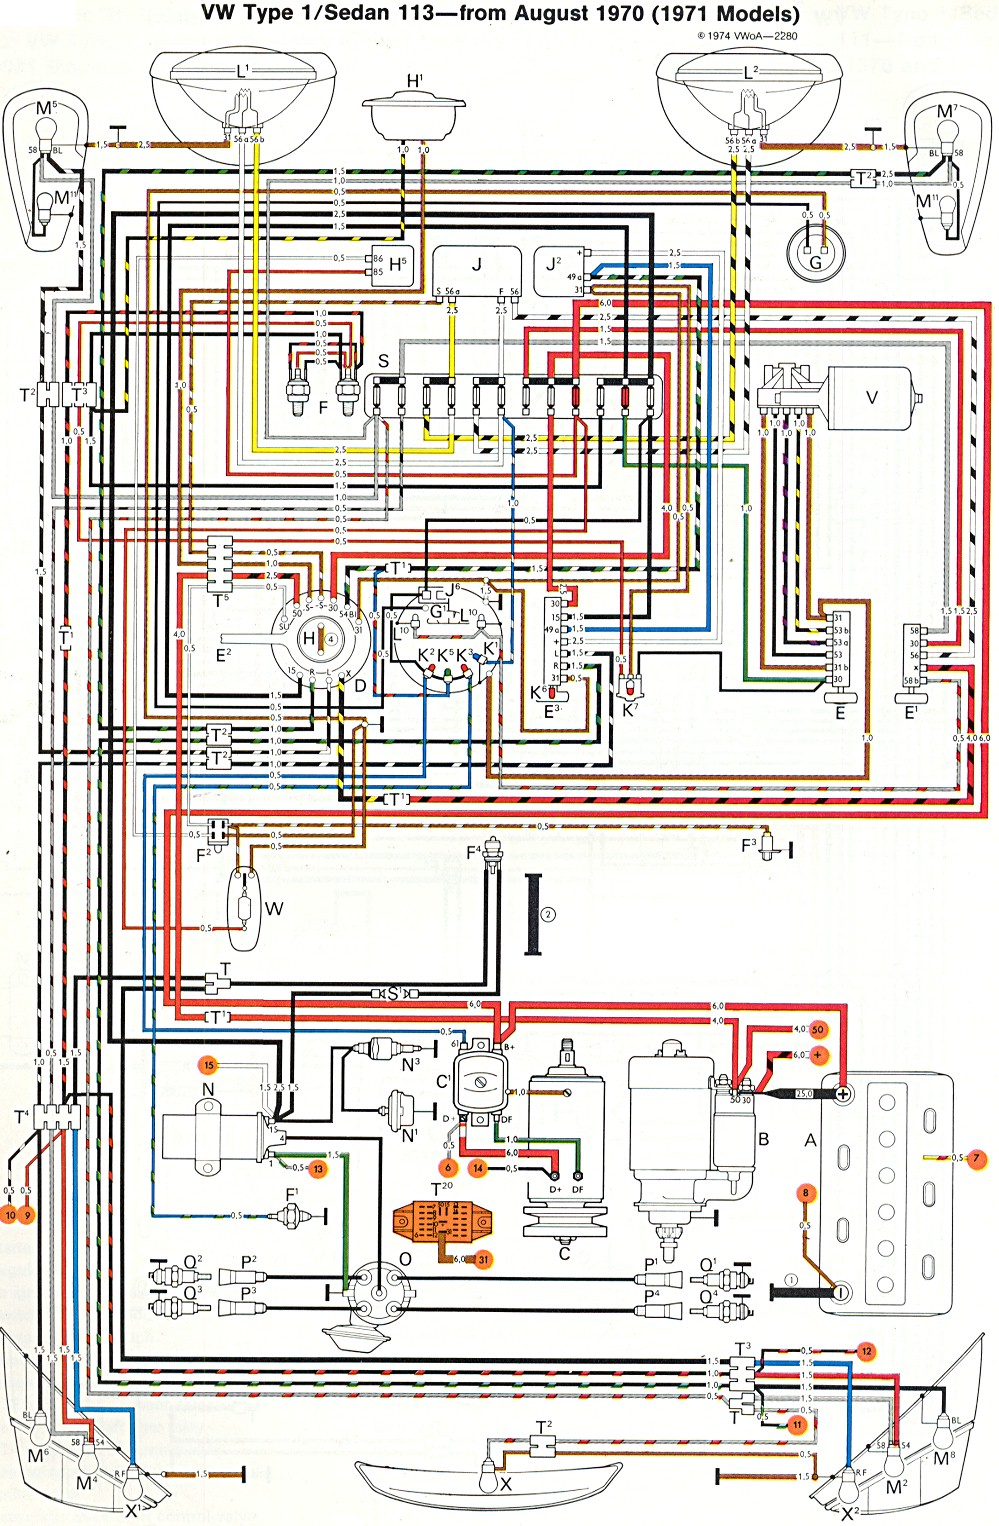 1971 Vw Bug Ignition Coil Wiring Diagram Library. 1971 Super Beetle Wiring Diagram Thegoldenbug 1968 Vw Bug Wiringdiagram Volkswagen. Volkswagen. Vw Bug Wiring Harness Kit At Scoala.co